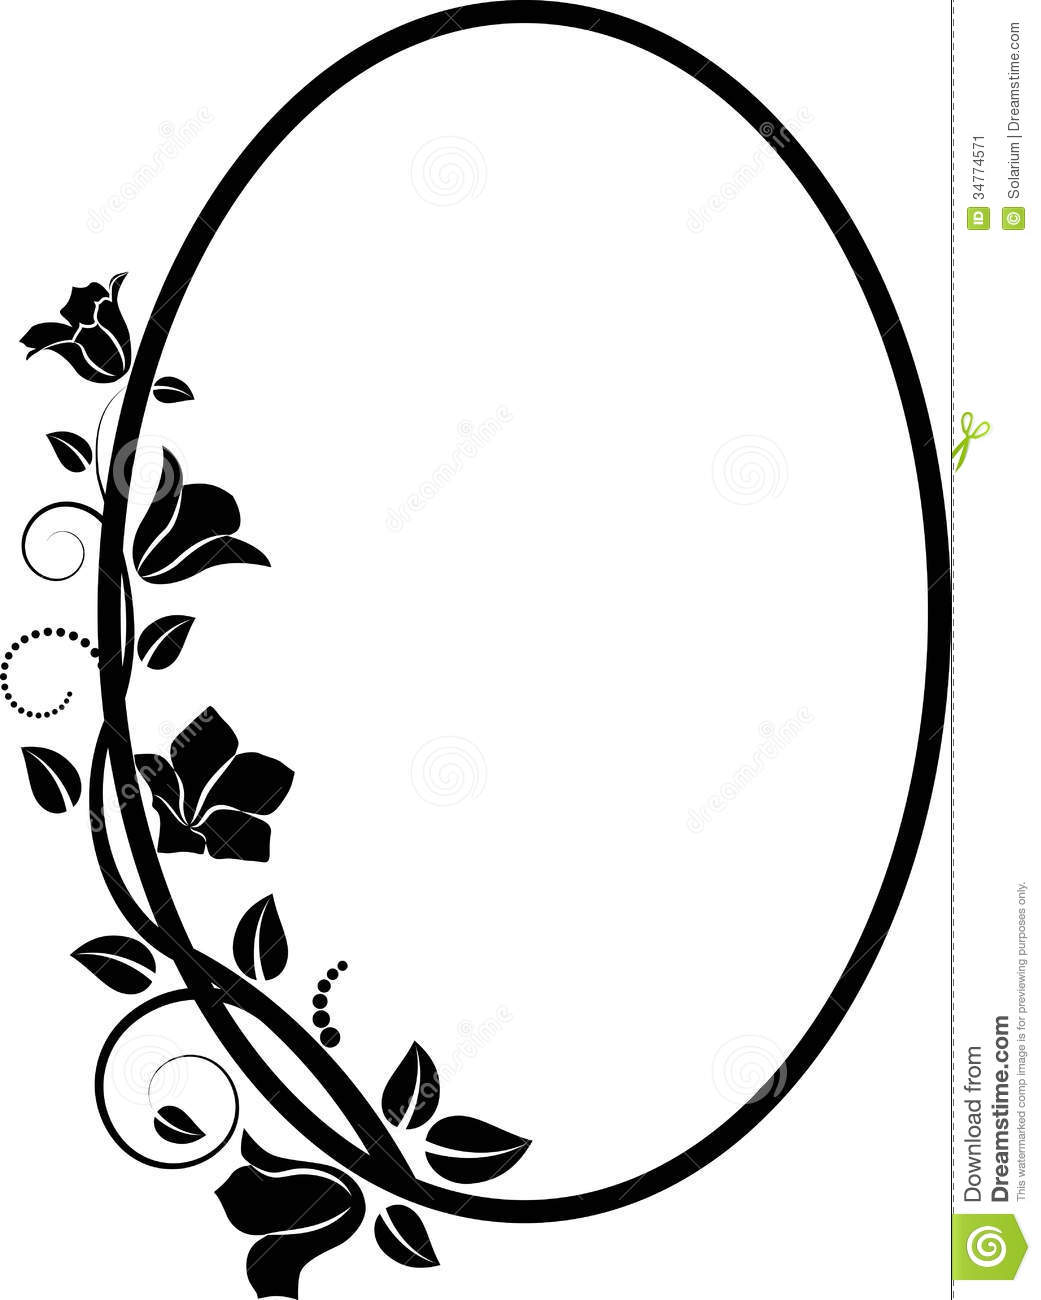 Floral clipart oval Border Images oval%20frame%20clipart Clipart Horizontal